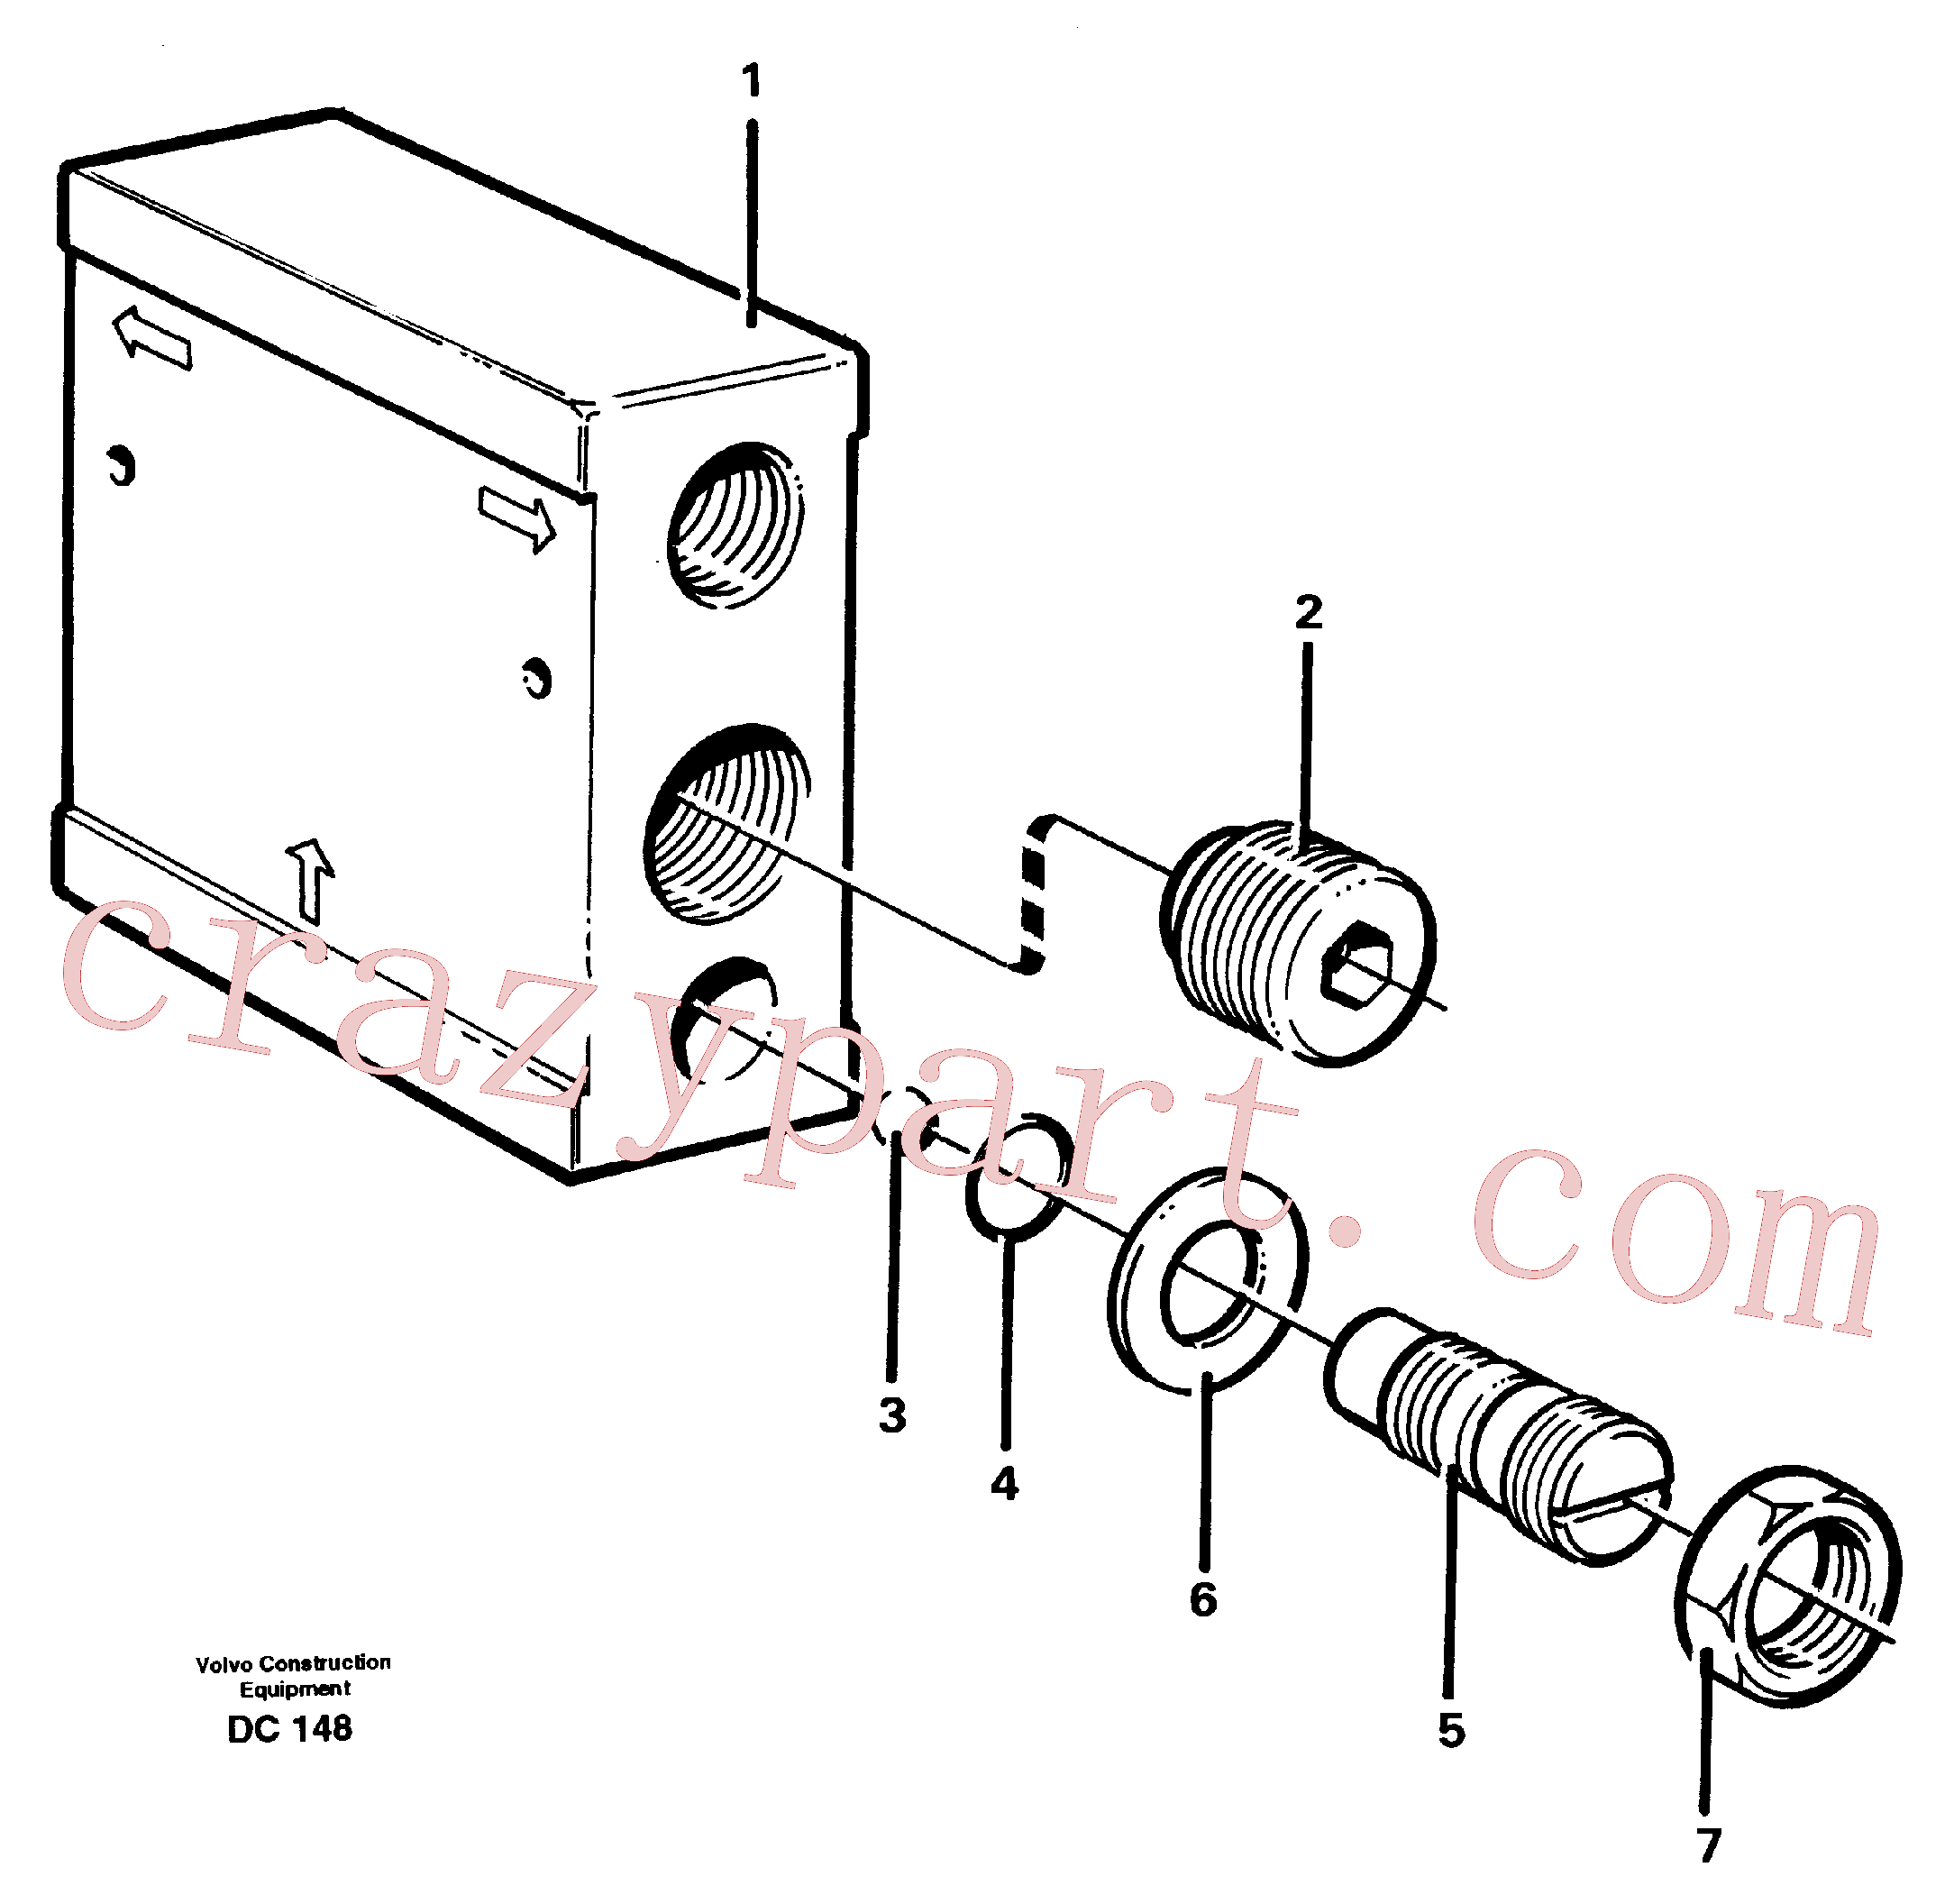 VOE968215 for Volvo Flow distributor(DC148 assembly)